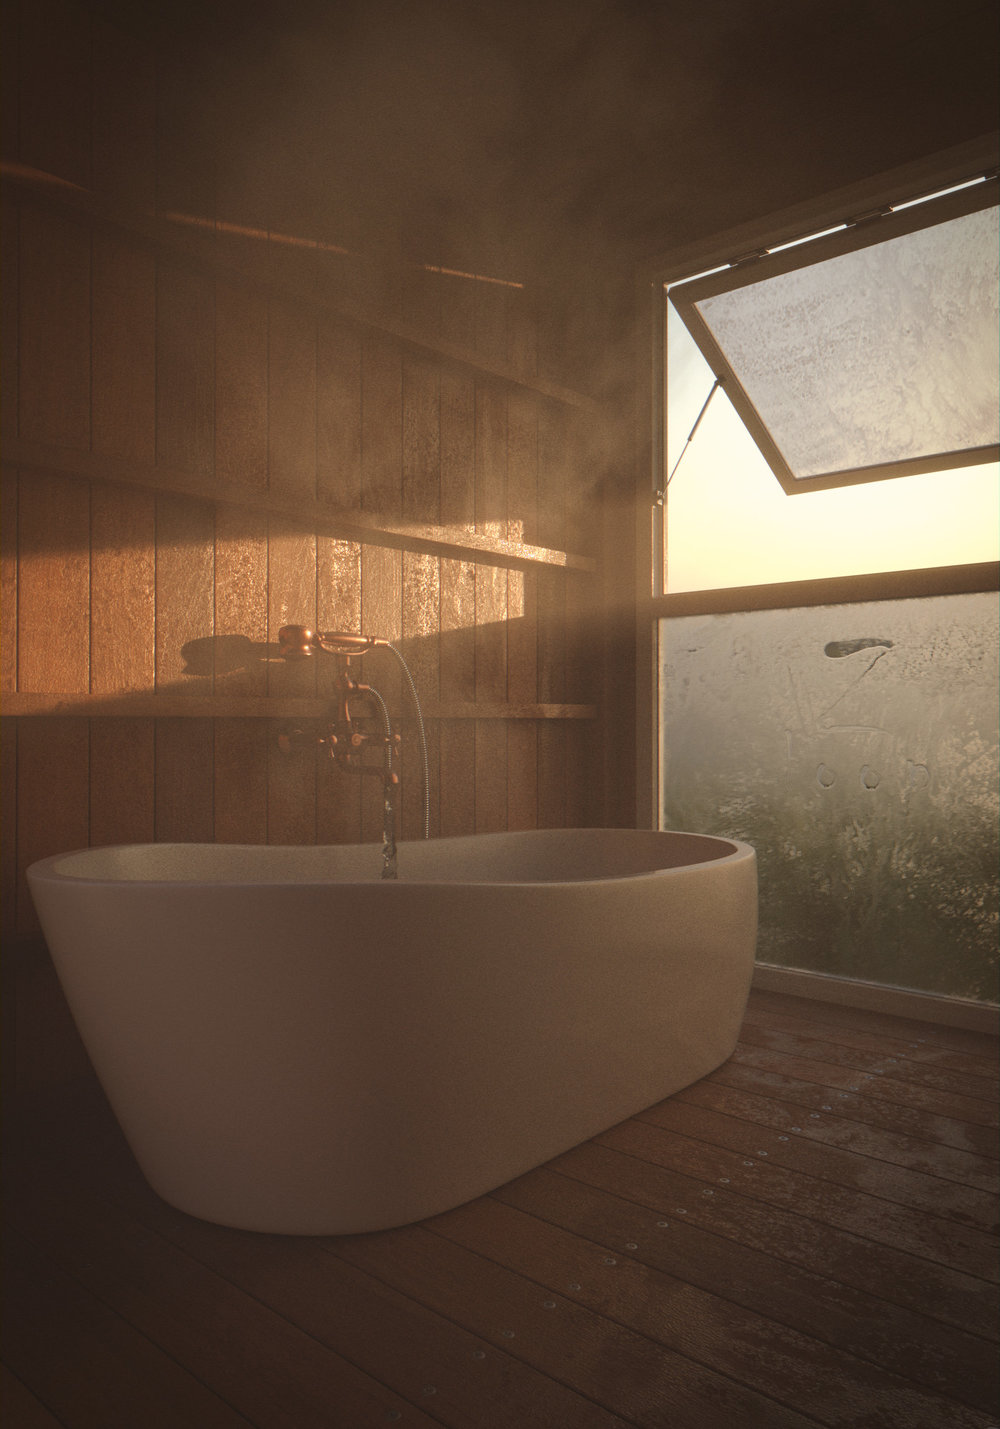 Minimalistic yet highly detailed bathroom, by  Gaiduk Dmytro  using  Overlay  and  Wood  materials. Made with Blender.